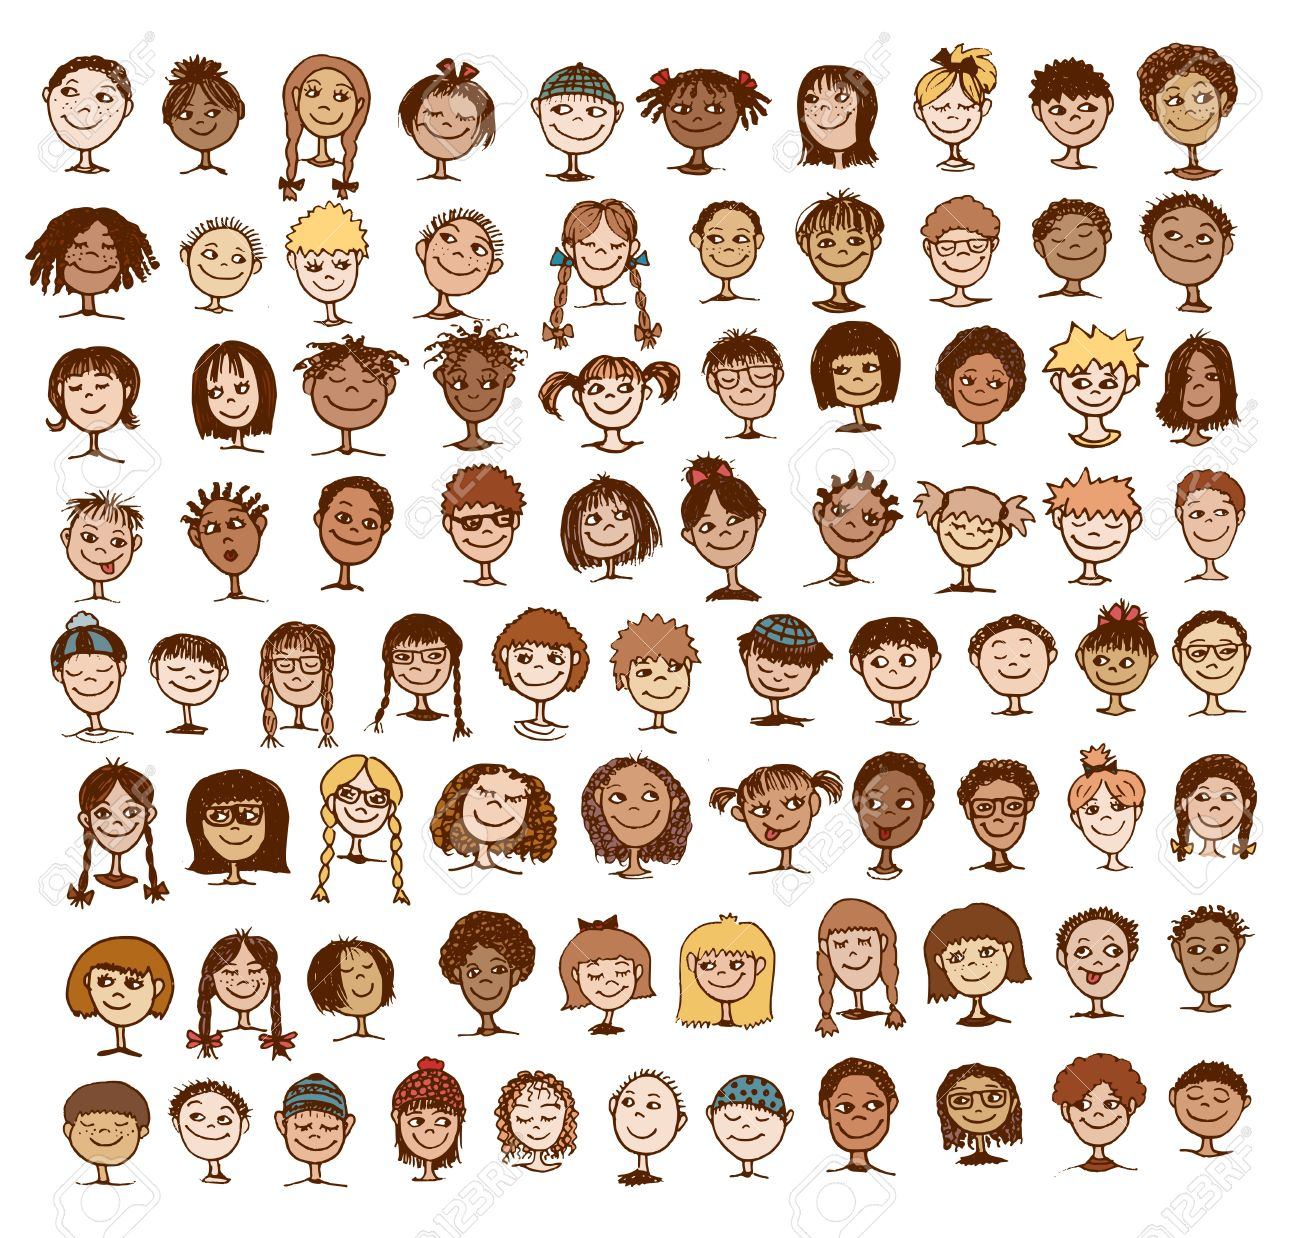 Collection of colorful hand drawn kids' faces - 55792072